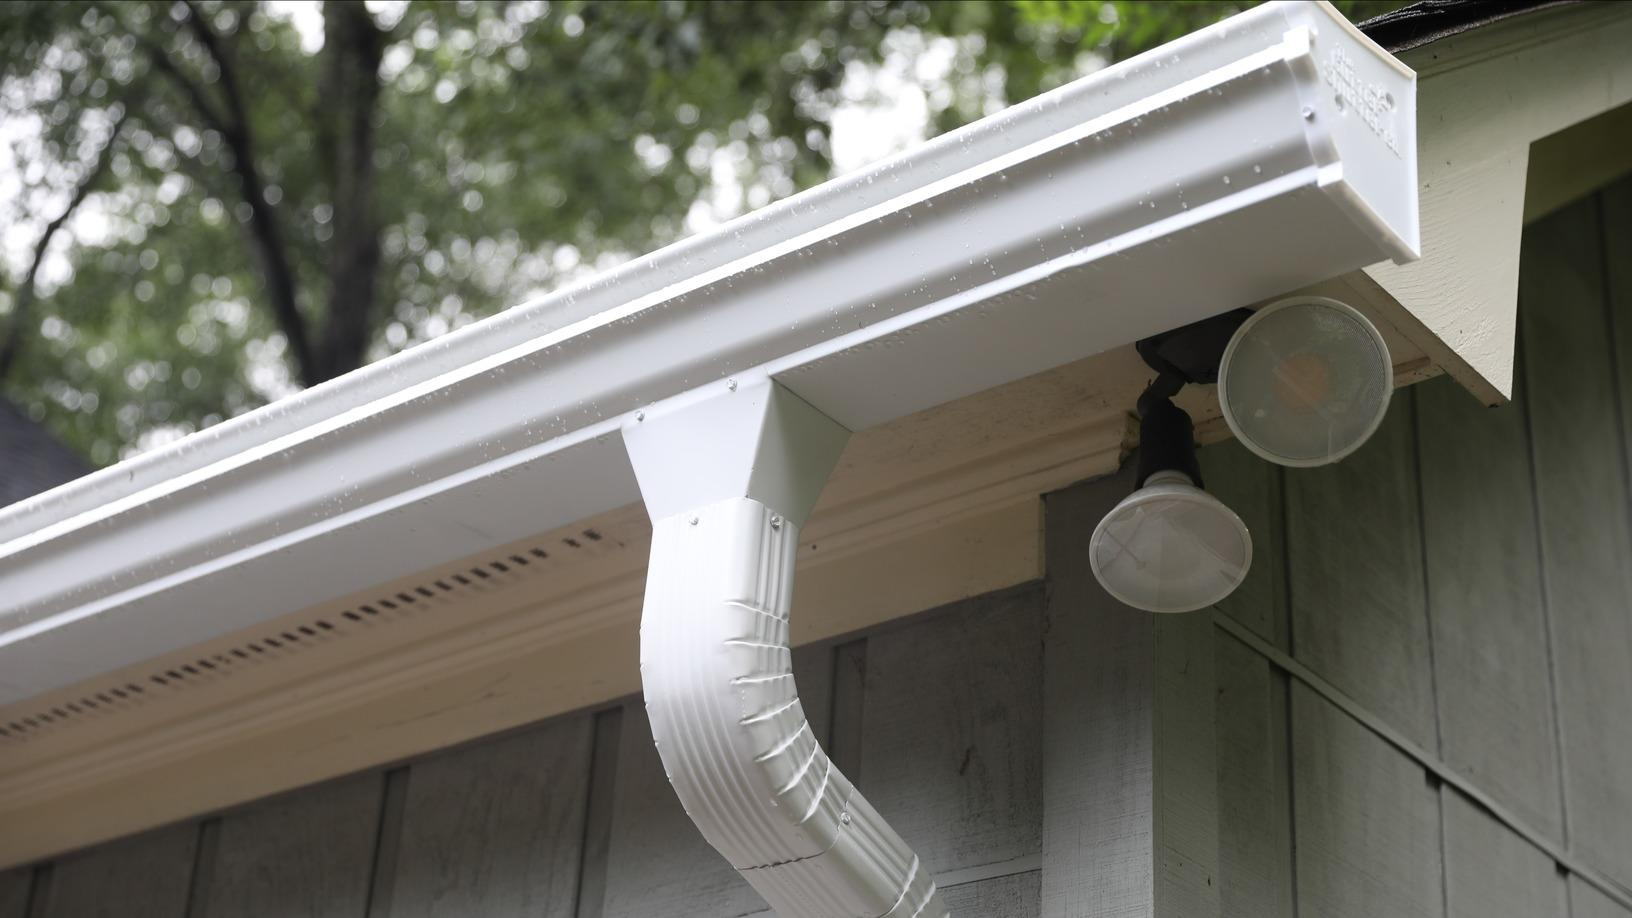 Midlands SC Gutter and Downspout Replacement - After Photo